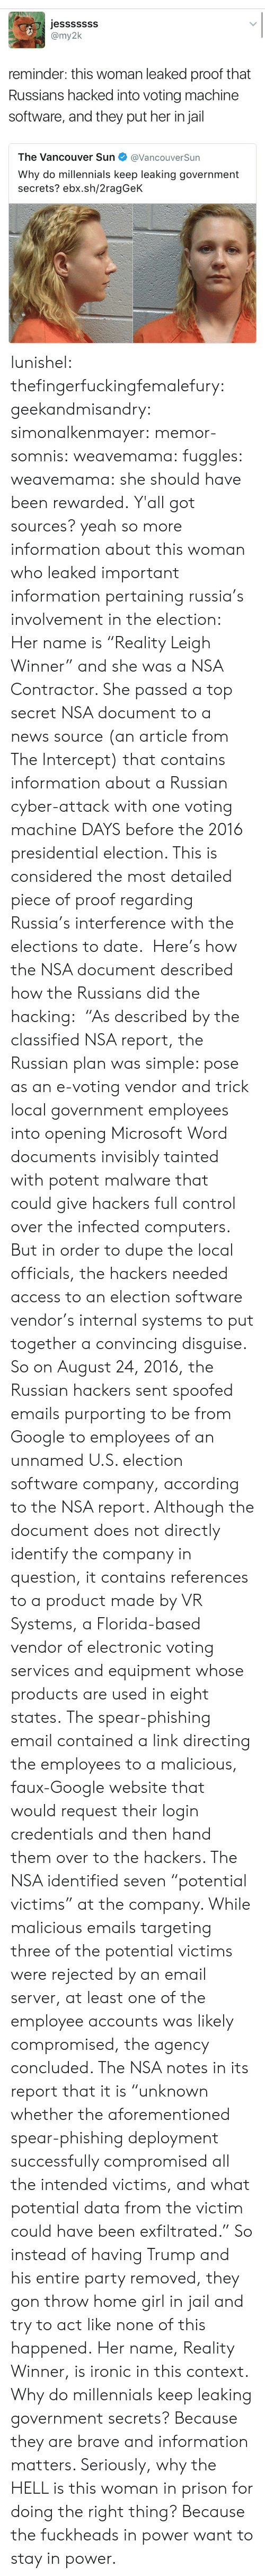 """2016 Presidential Election: jesssssSS  reminder: this woman leaked proof that  Russians hacked into voting machine  software, and they put her in jail  The Vancouver Sun@VancouverSun  Why do millennials keep leaking government  secrets? ebx.sh/2ragGeK lunishel: thefingerfuckingfemalefury:  geekandmisandry:  simonalkenmayer:  memor-somnis:  weavemama:   fuggles:  weavemama:  she should have been rewarded.  Y'all got sources?  yeah so more information about this woman who leaked important information pertaining russia's involvement in the election: Her name is """"Reality Leigh Winner"""" and she was a NSA Contractor. She passed a top secret NSA document to a news source (an article from The Intercept) that contains information about a Russian cyber-attack with one voting machine DAYS before the 2016 presidential election. This is considered the most detailed piece of proof regarding Russia's interference with the elections to date. Here's how the NSA document described how the Russians did the hacking: """"As described by the classified NSA report, the Russian plan was simple: pose as an e-voting vendor and trick local government employees into opening Microsoft Word documents invisibly tainted with potent malware that could give hackers full control over the infected computers. But in order to dupe the local officials, the hackers needed access to an election software vendor's internal systems to put together a convincing disguise. So on August 24, 2016, the Russian hackers sent spoofed emails purporting to be from Google to employees of an unnamed U.S. election software company, according to the NSA report. Although the document does not directly identify the company in question, it contains references to a product made by VR Systems, a Florida-based vendor of electronic voting services and equipment whose products are used in eight states. The spear-phishing email contained a link directing the employees to a malicious, faux-Google website that would request their login cr"""